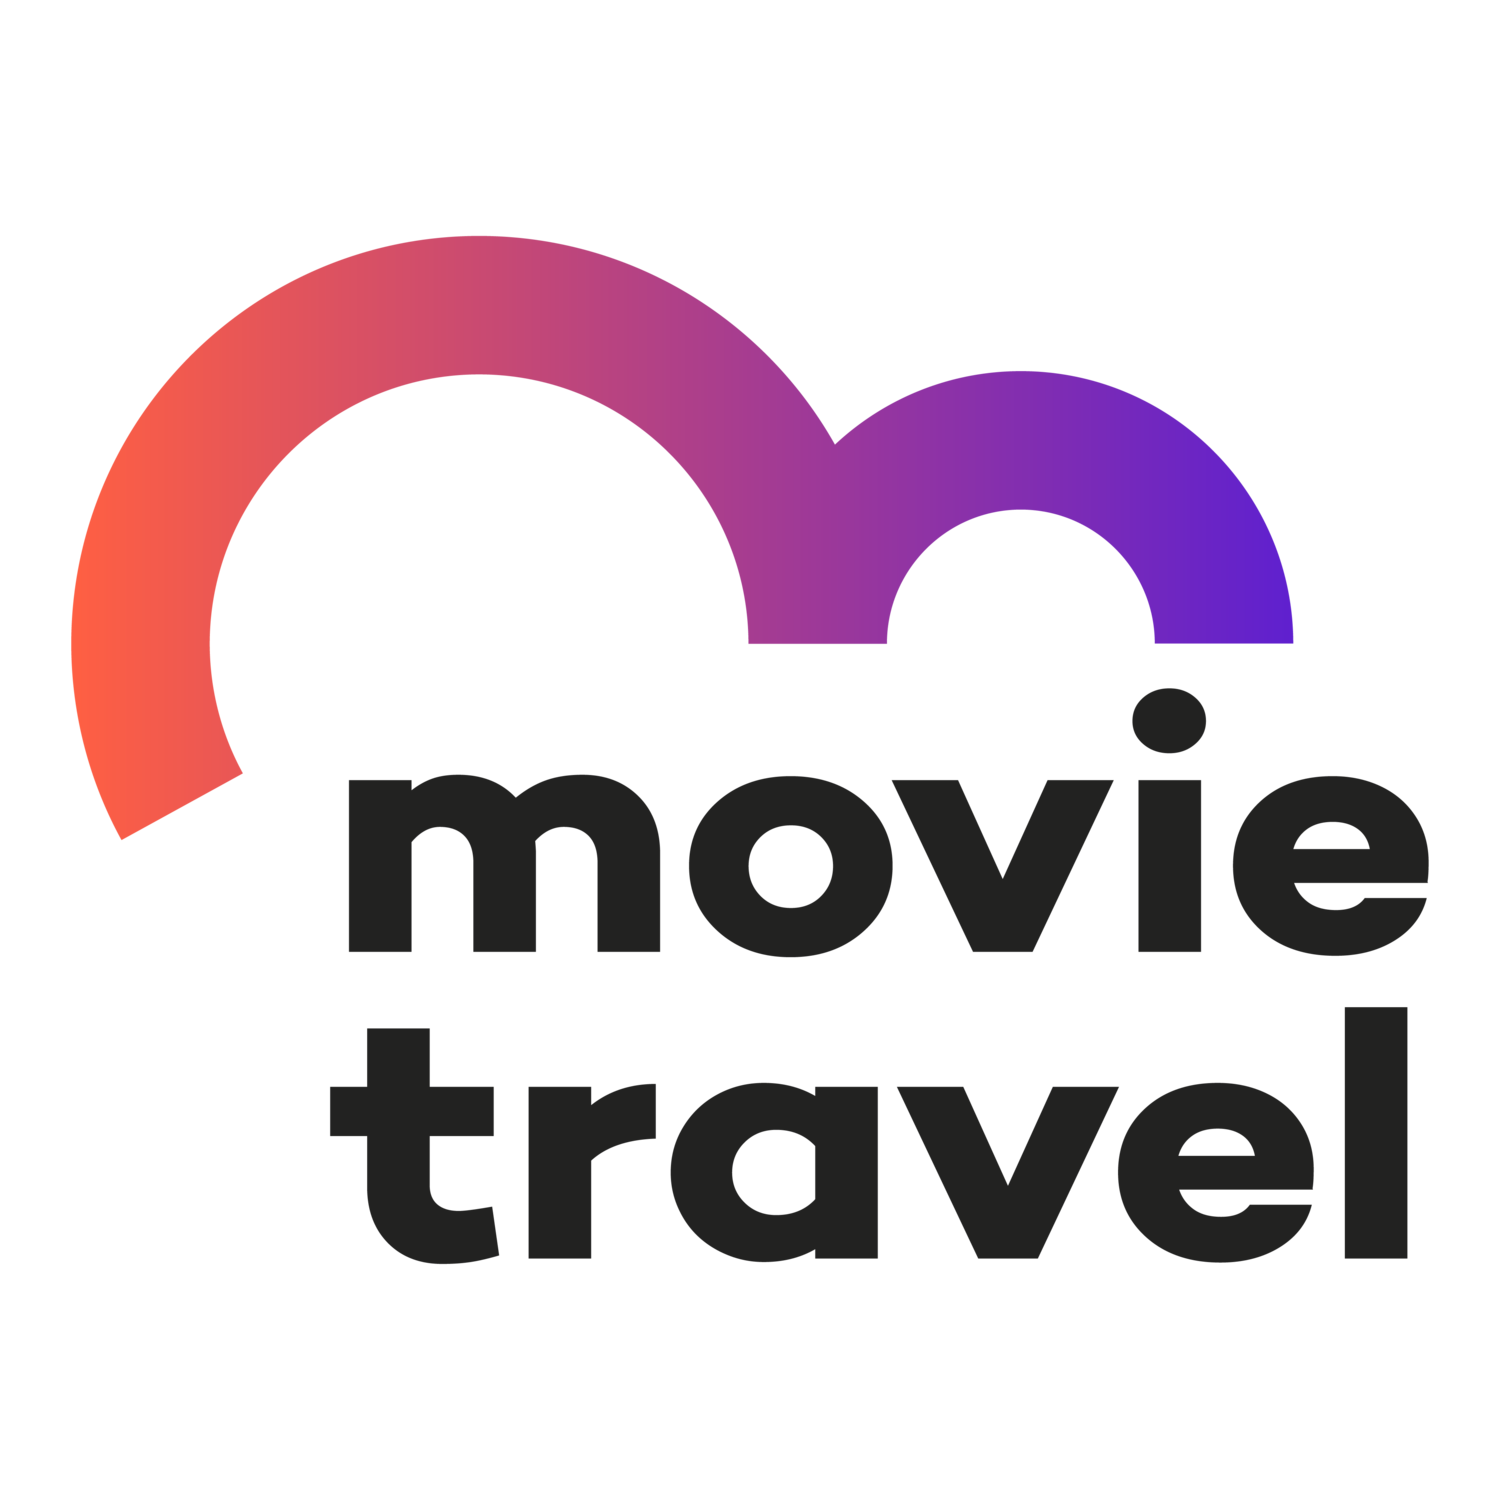 MovieTravel